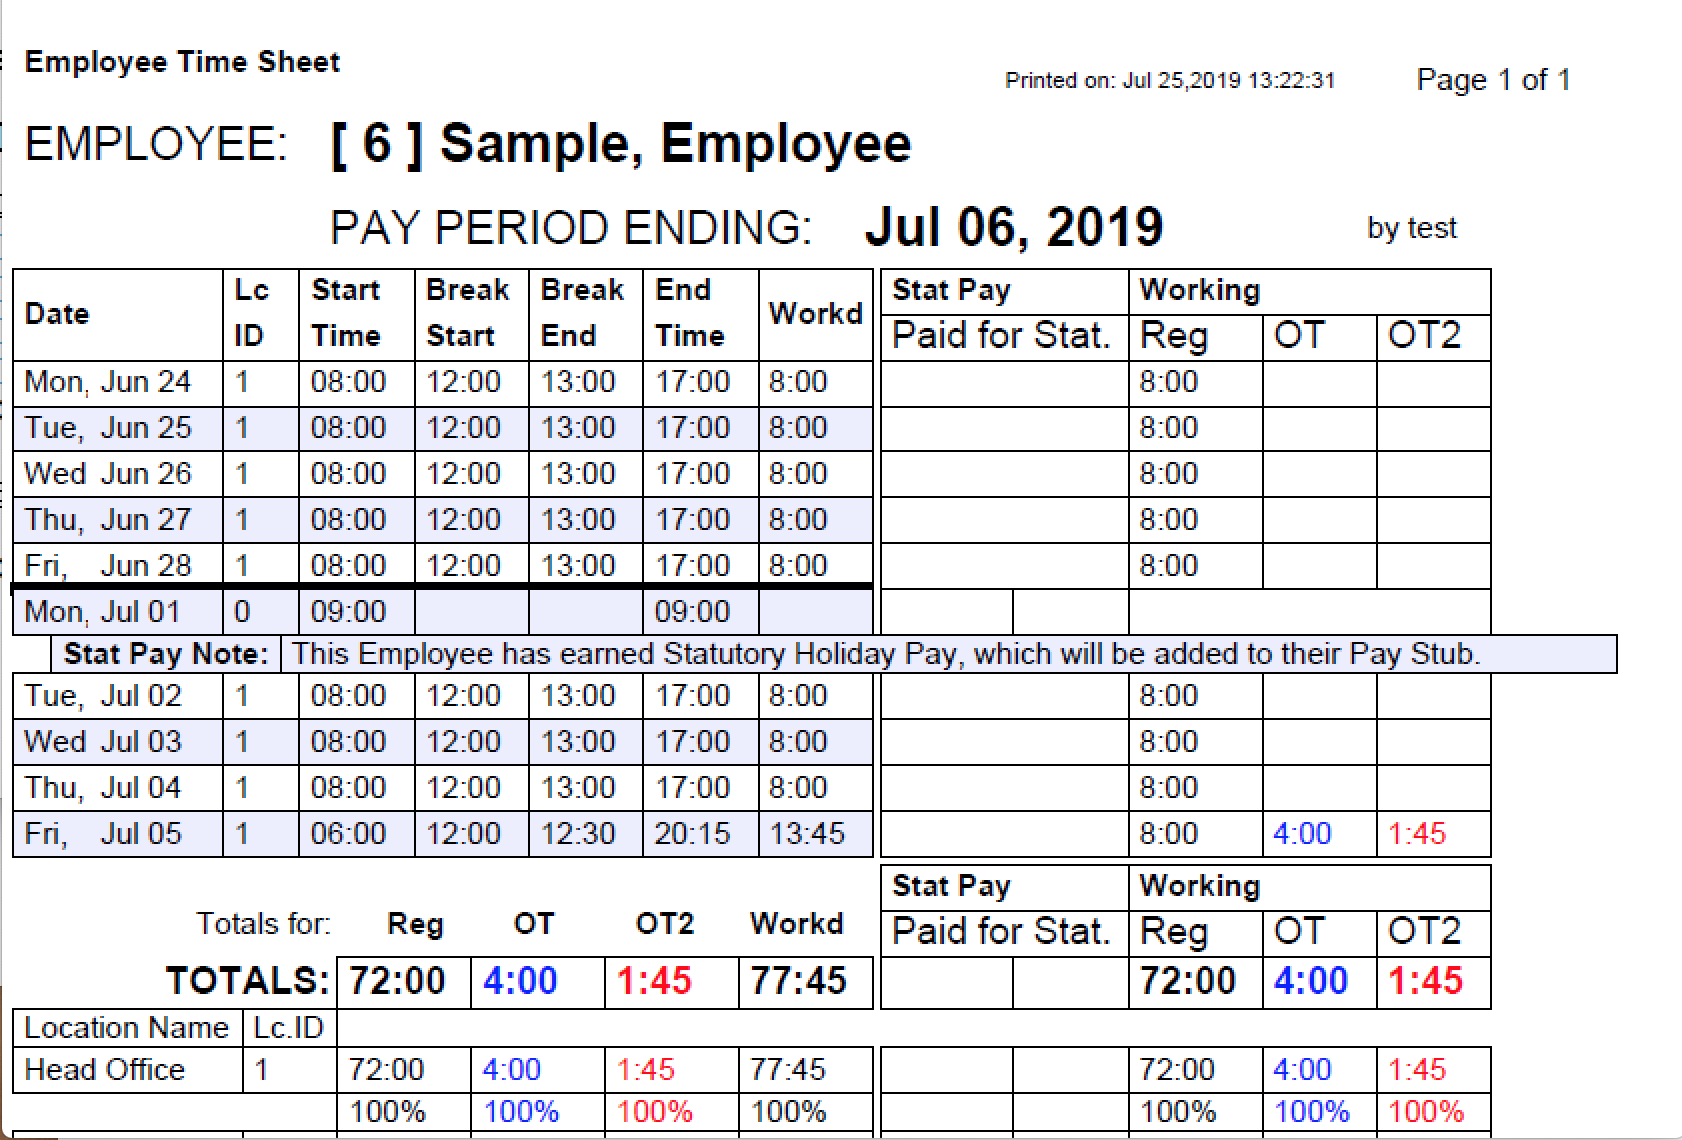 Payroll Connected detailed time sheets